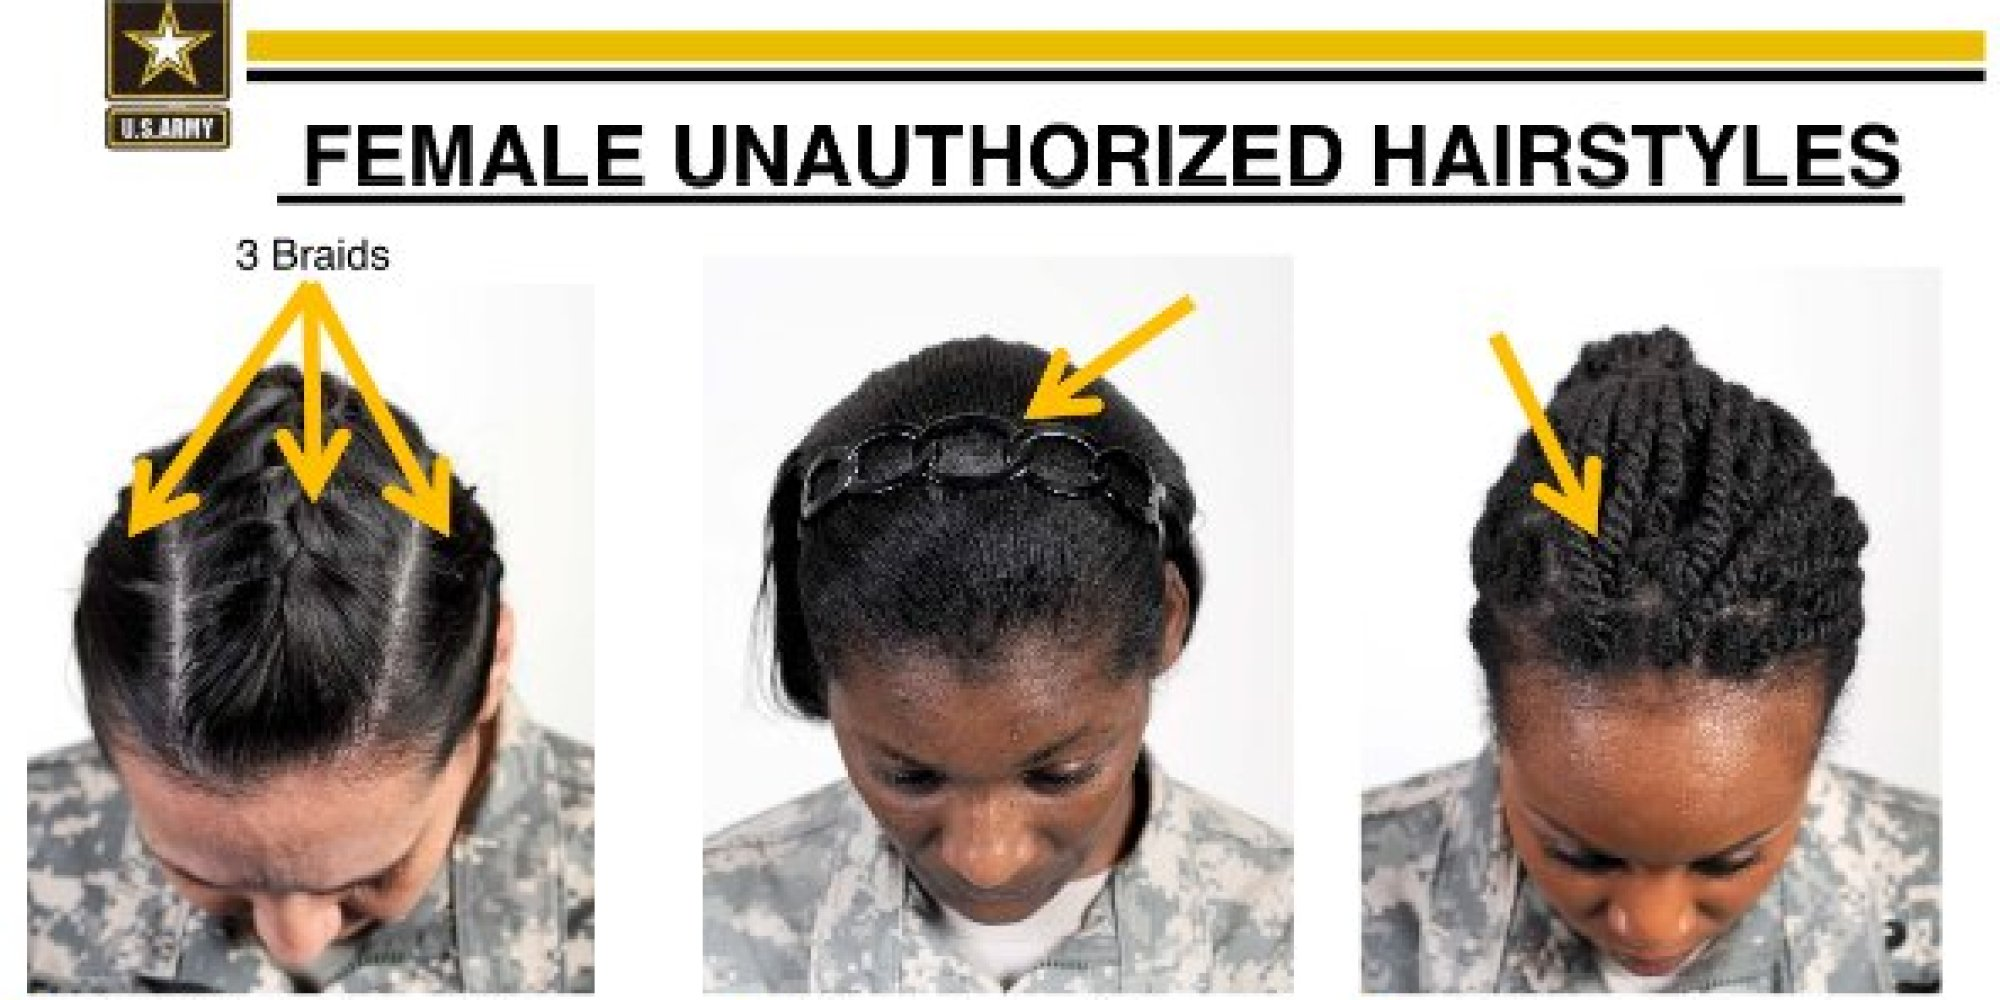 Black Female Sol rs Criticize Armys New Hairstyle Rules As